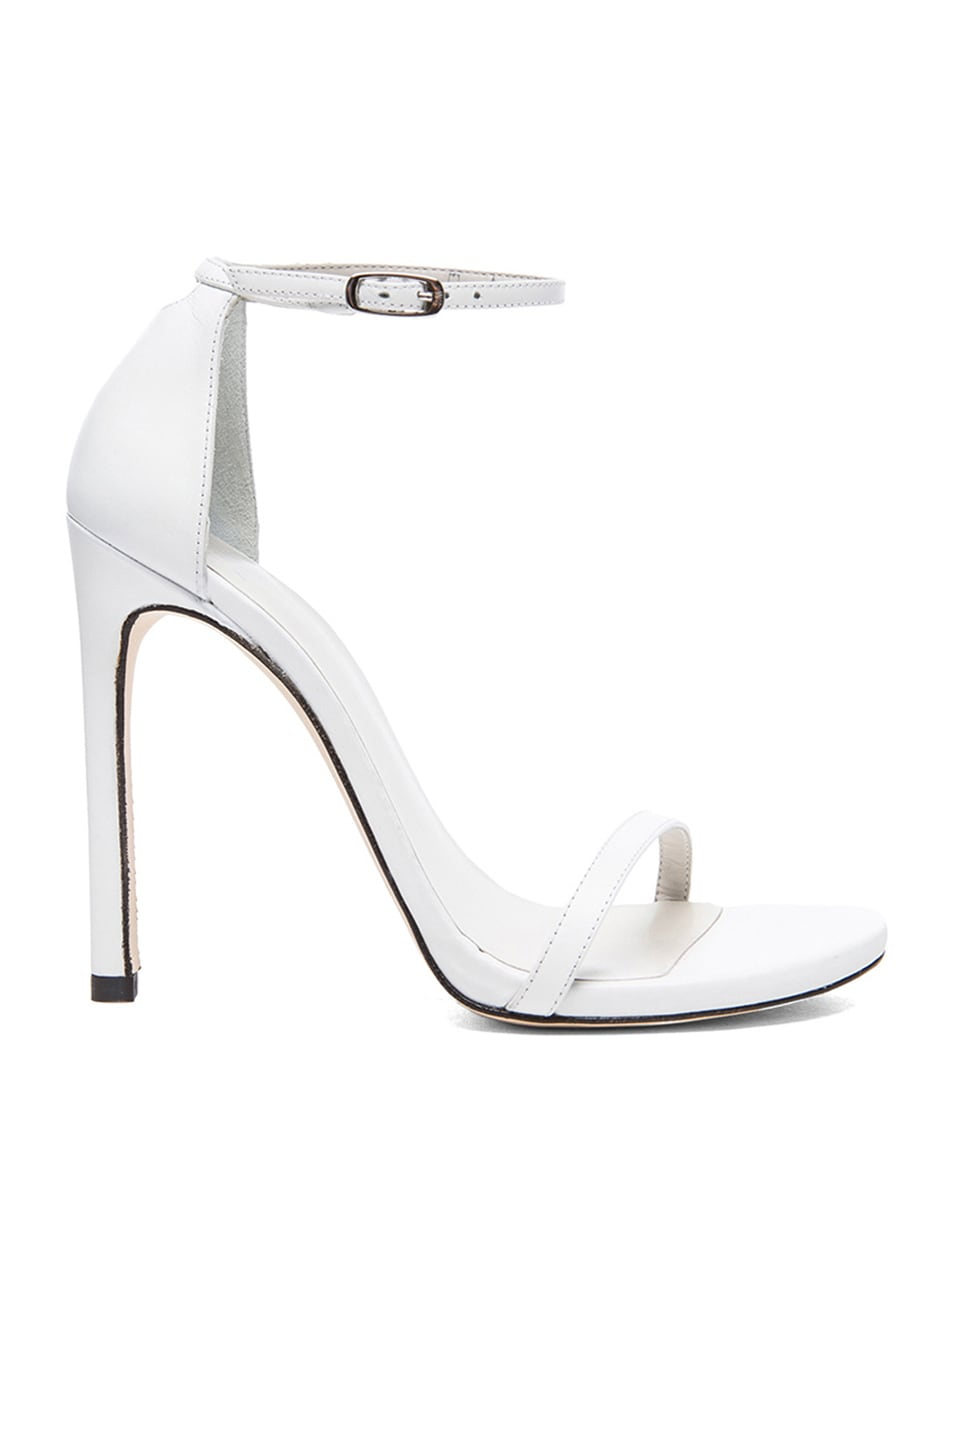 Image 1 of Stuart Weitzman Nudist Heels in White Leather